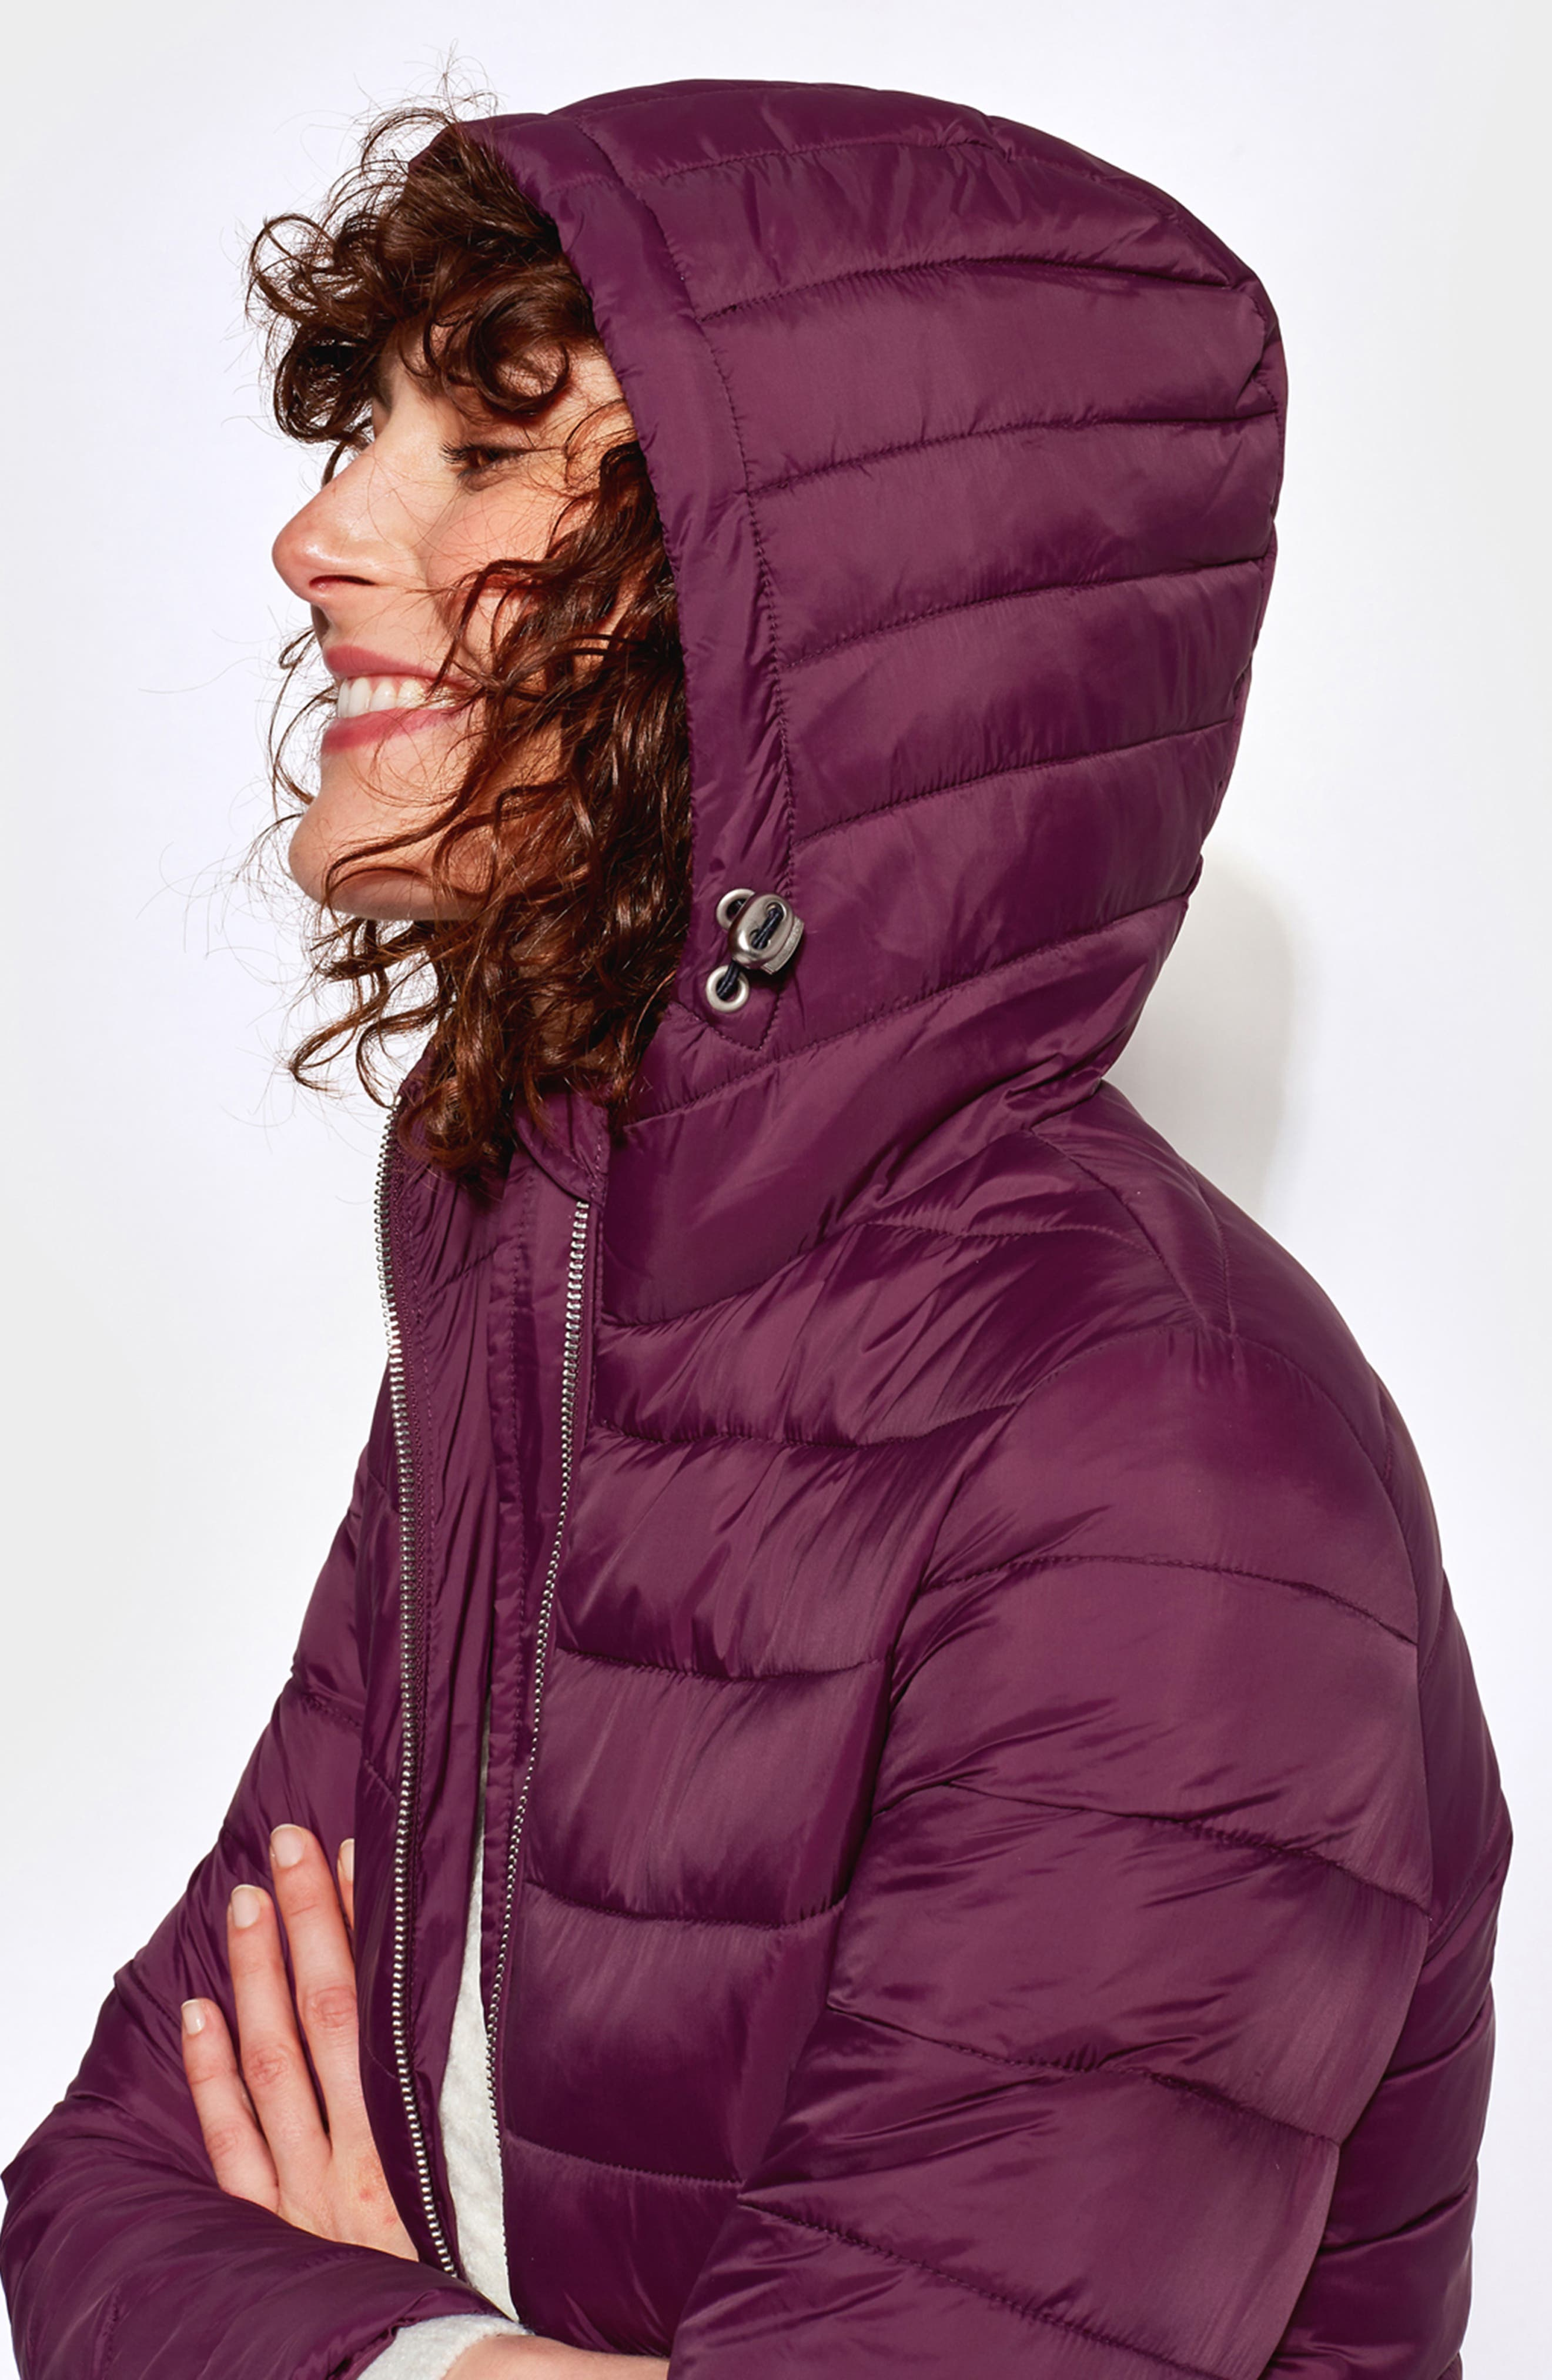 JOULES,                             Heathcote Two-Tone Puffer Jacket,                             Alternate thumbnail 12, color,                             BURGUNDY